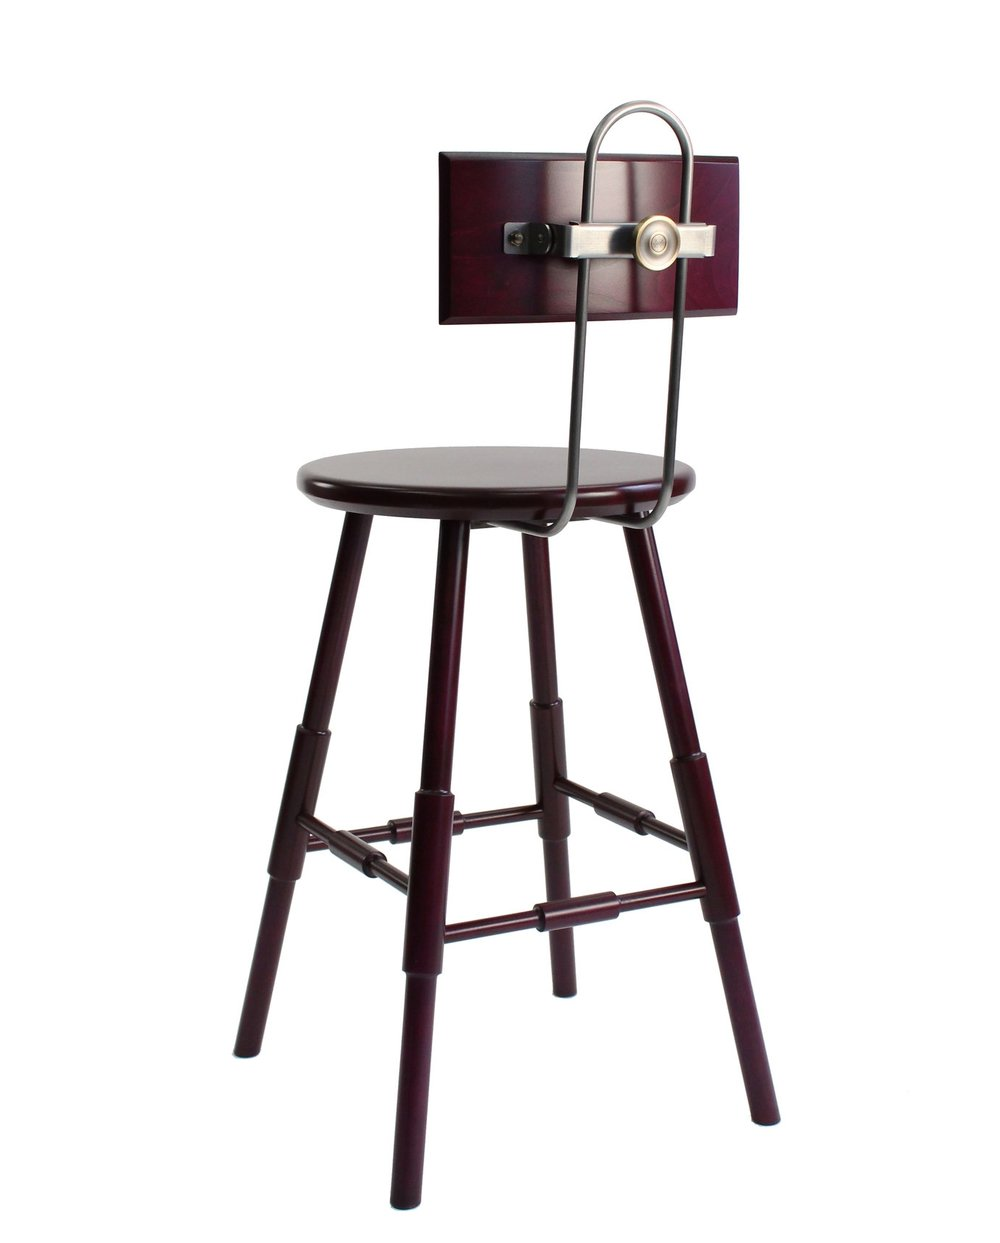 "ATLANTIC STOOL with BACK - 24"" (counter height) - $552 (40% off)  -  Beet Stain - Showroom Model.  2 years of light wear and tear.  Steel hair-pin bend is a living finish with natural rusting.  Beet Stain still glowy on this piece.  This stool has photographed so well and has represented the design beautifully!  Bittersweet to see her go."